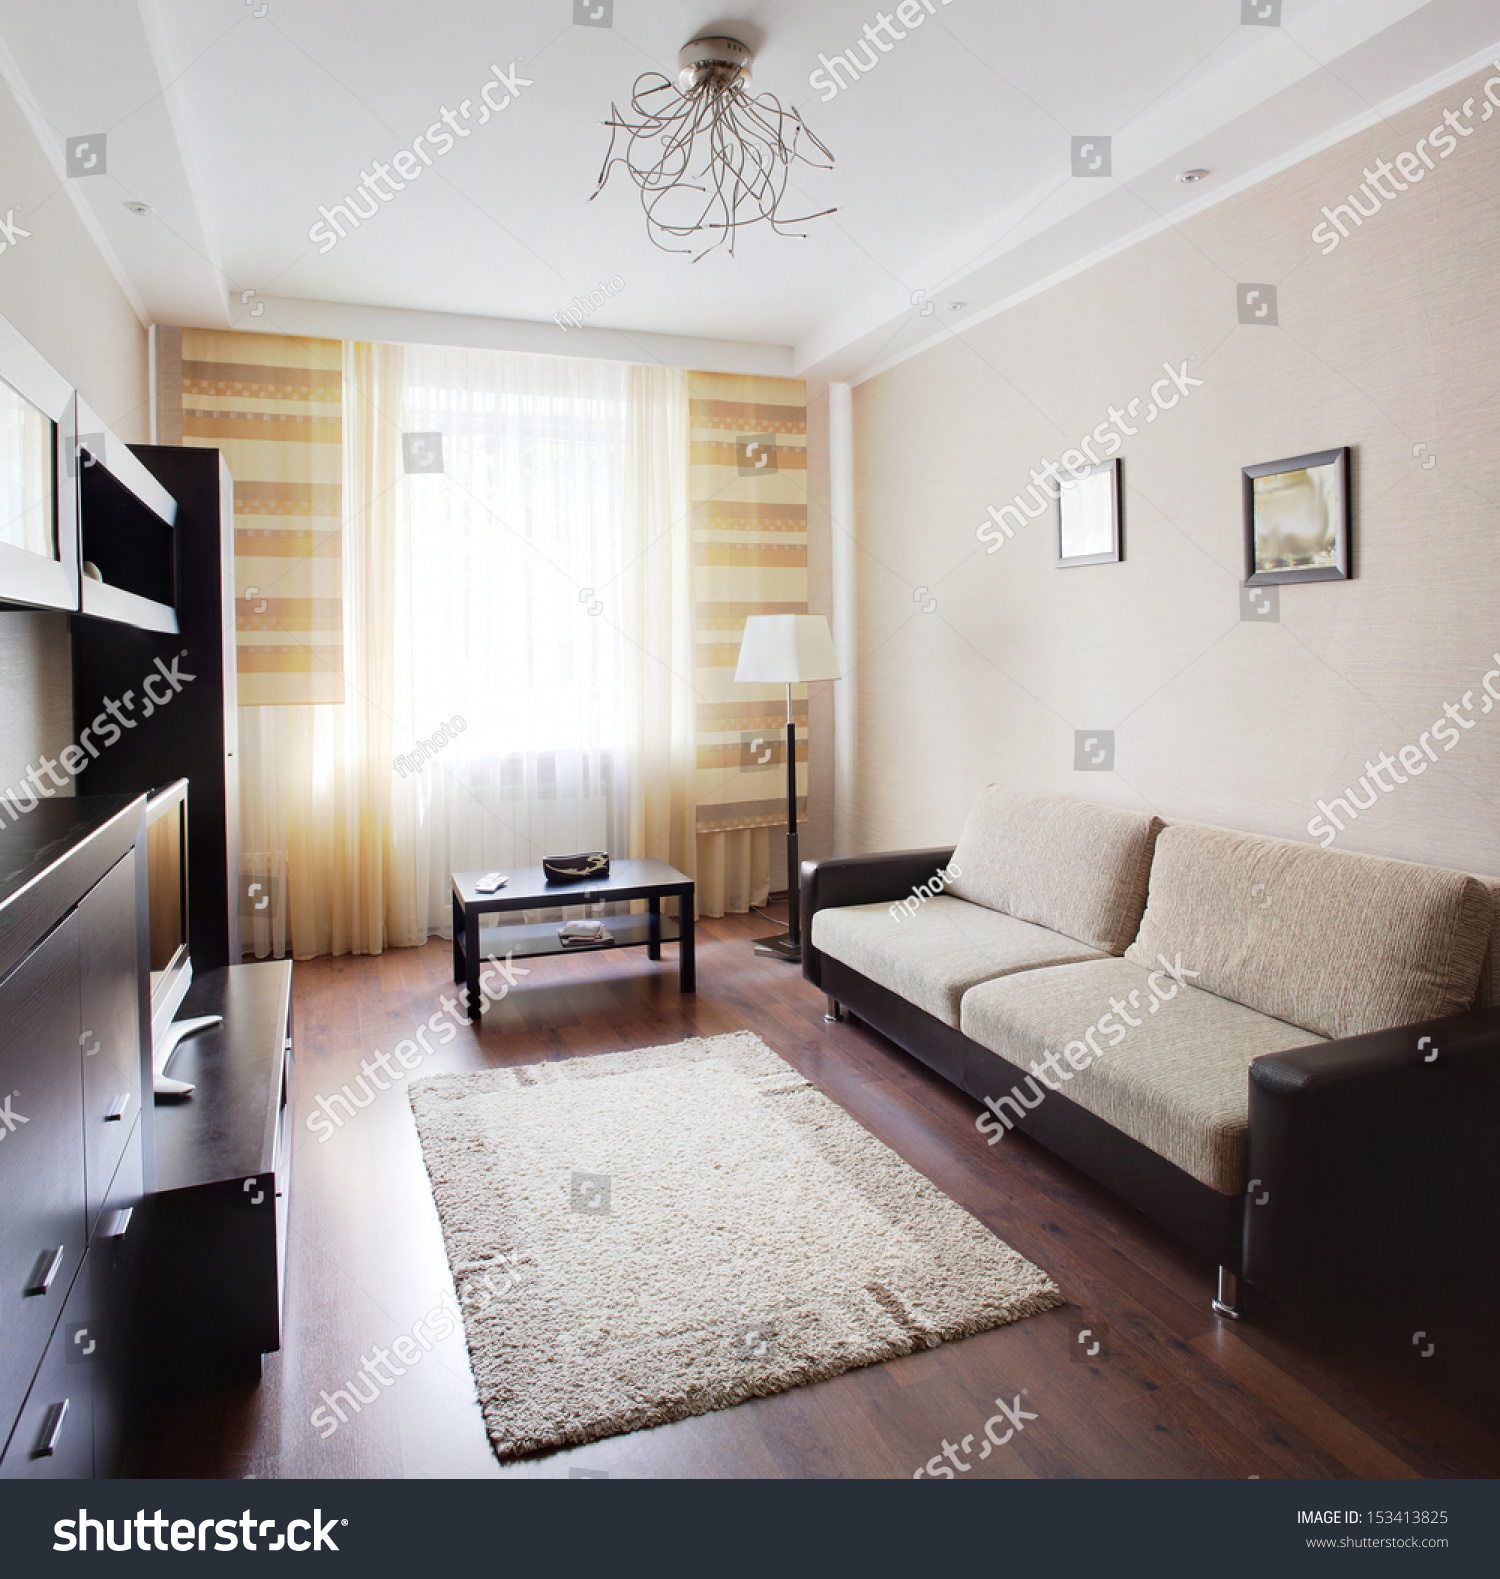 Luxury Very Clean Empty European Room Stock Photo (Royalty Free ...